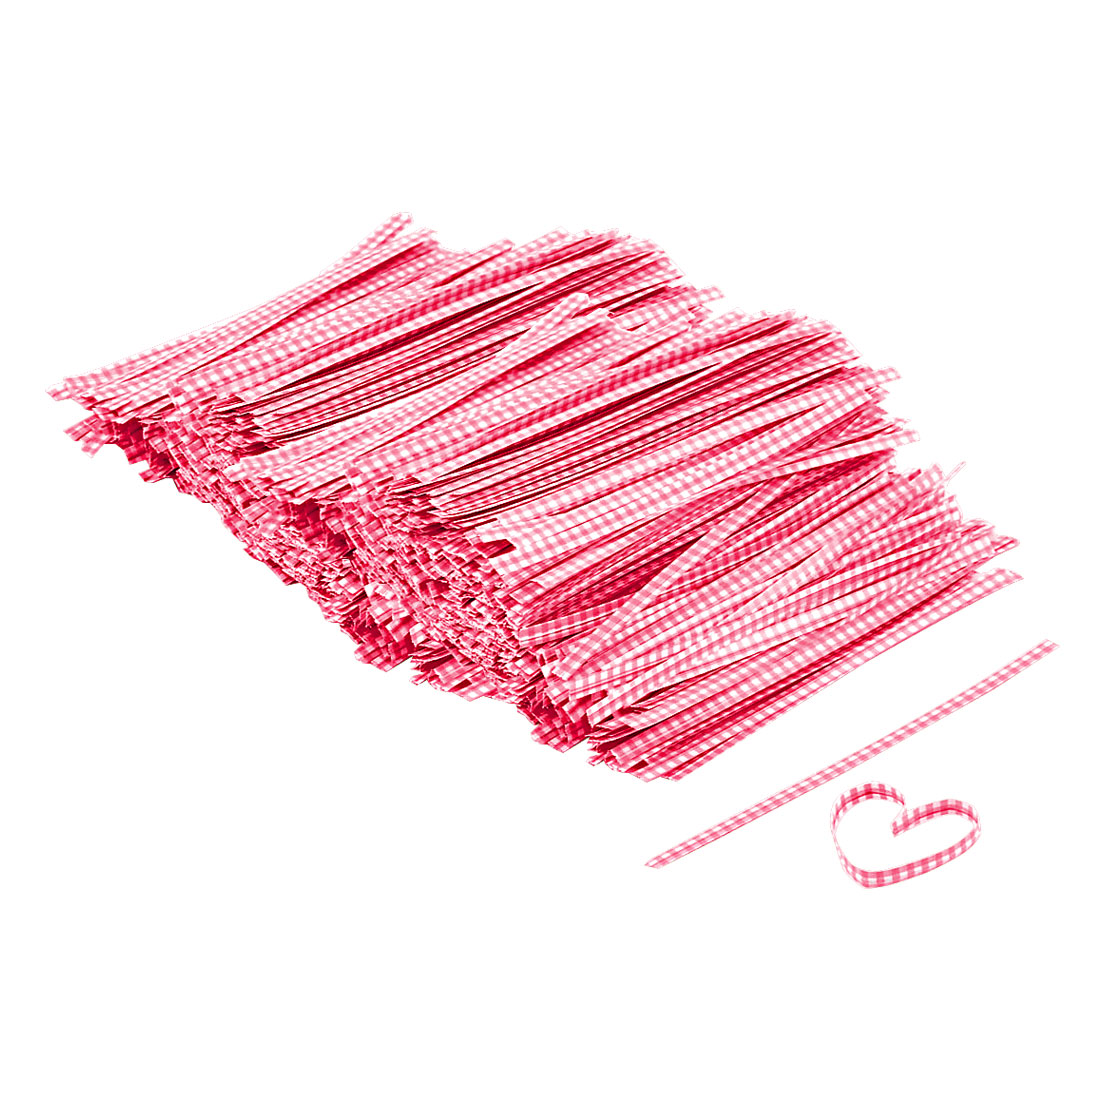 Plaid Pattern Candy Bag Wrapper Twist Tie String Decor Red 102mm Length 1000 Pcs